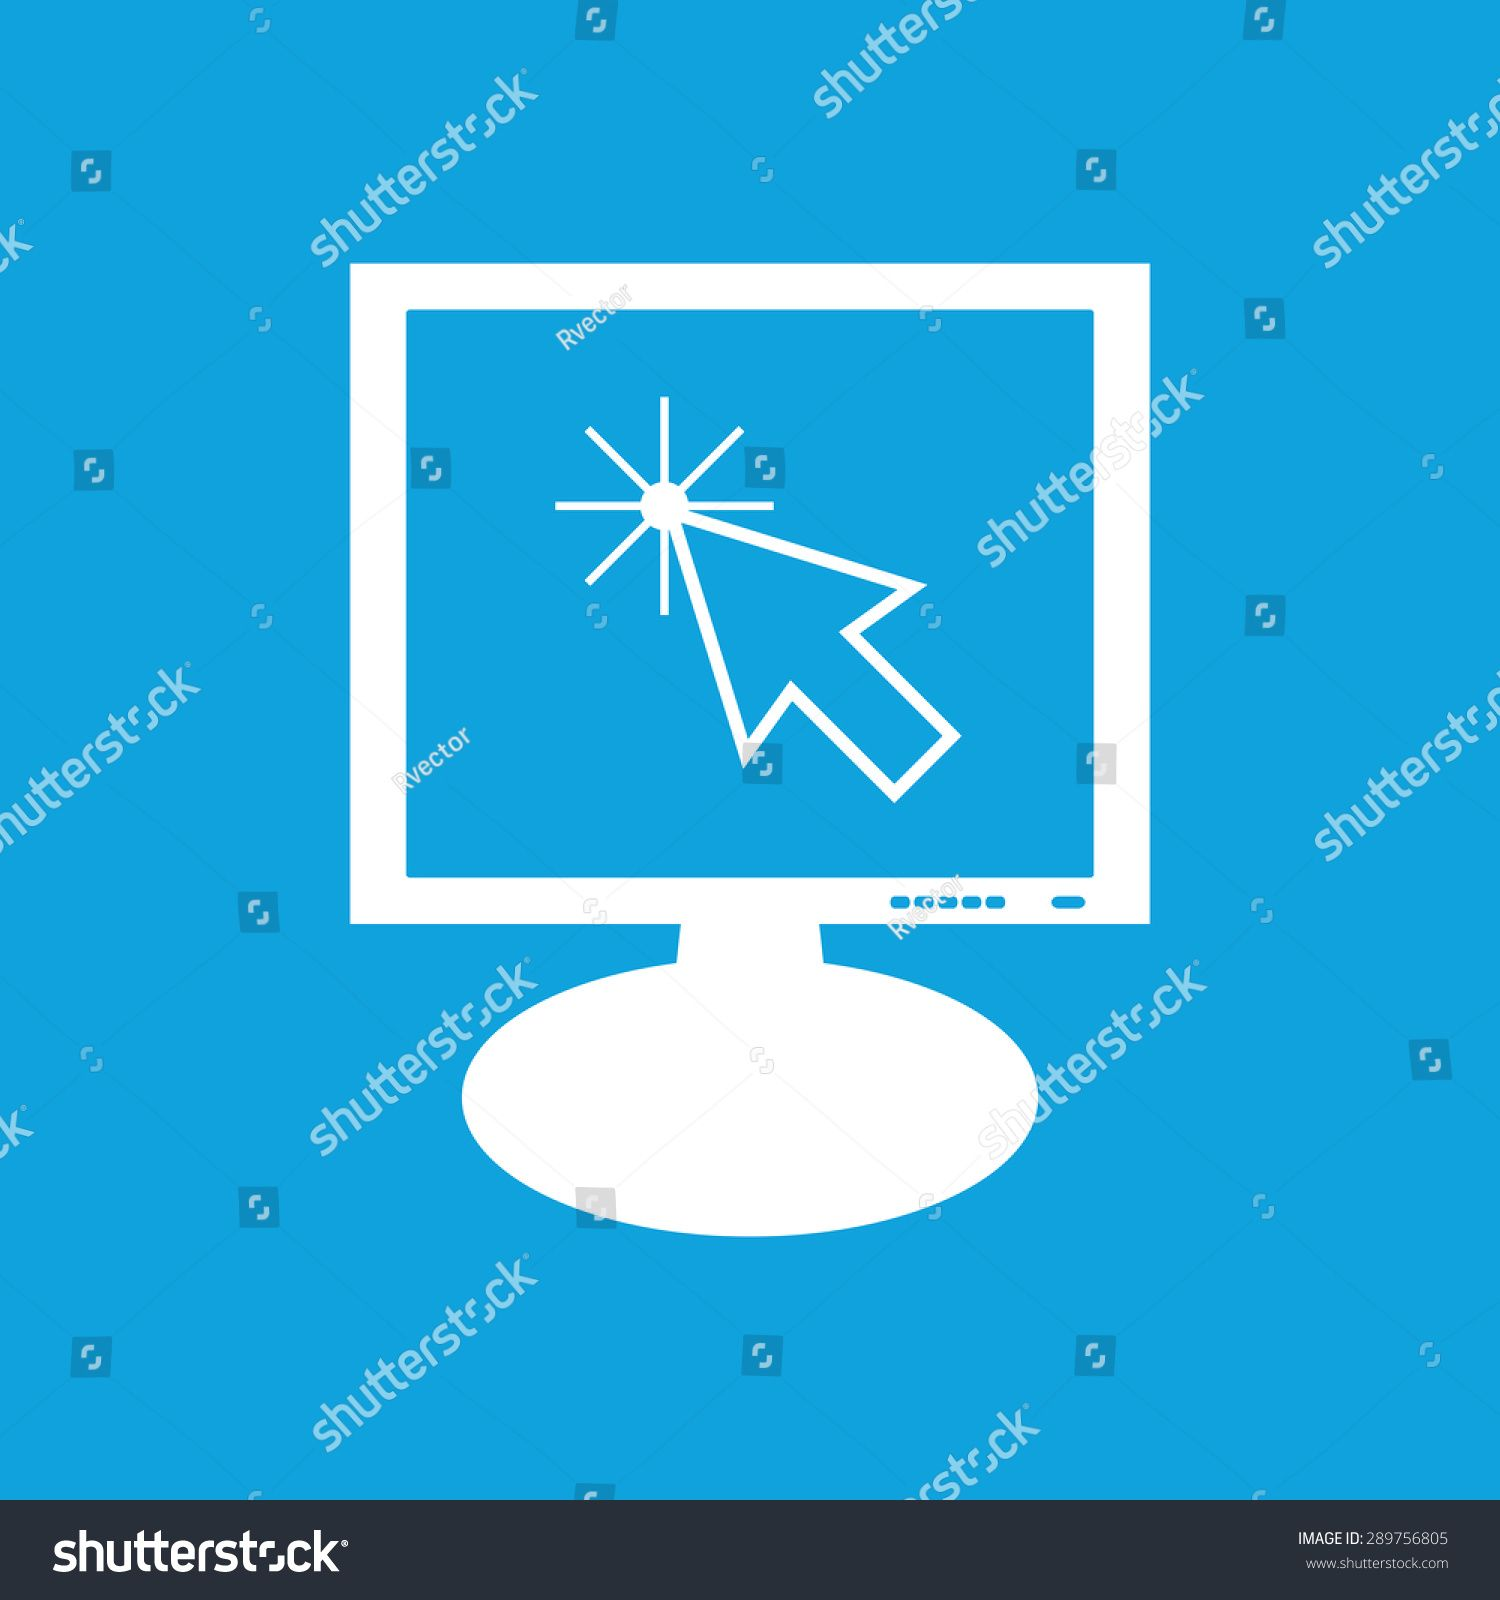 Icon with image of arrow cursor on the screen, isolated on